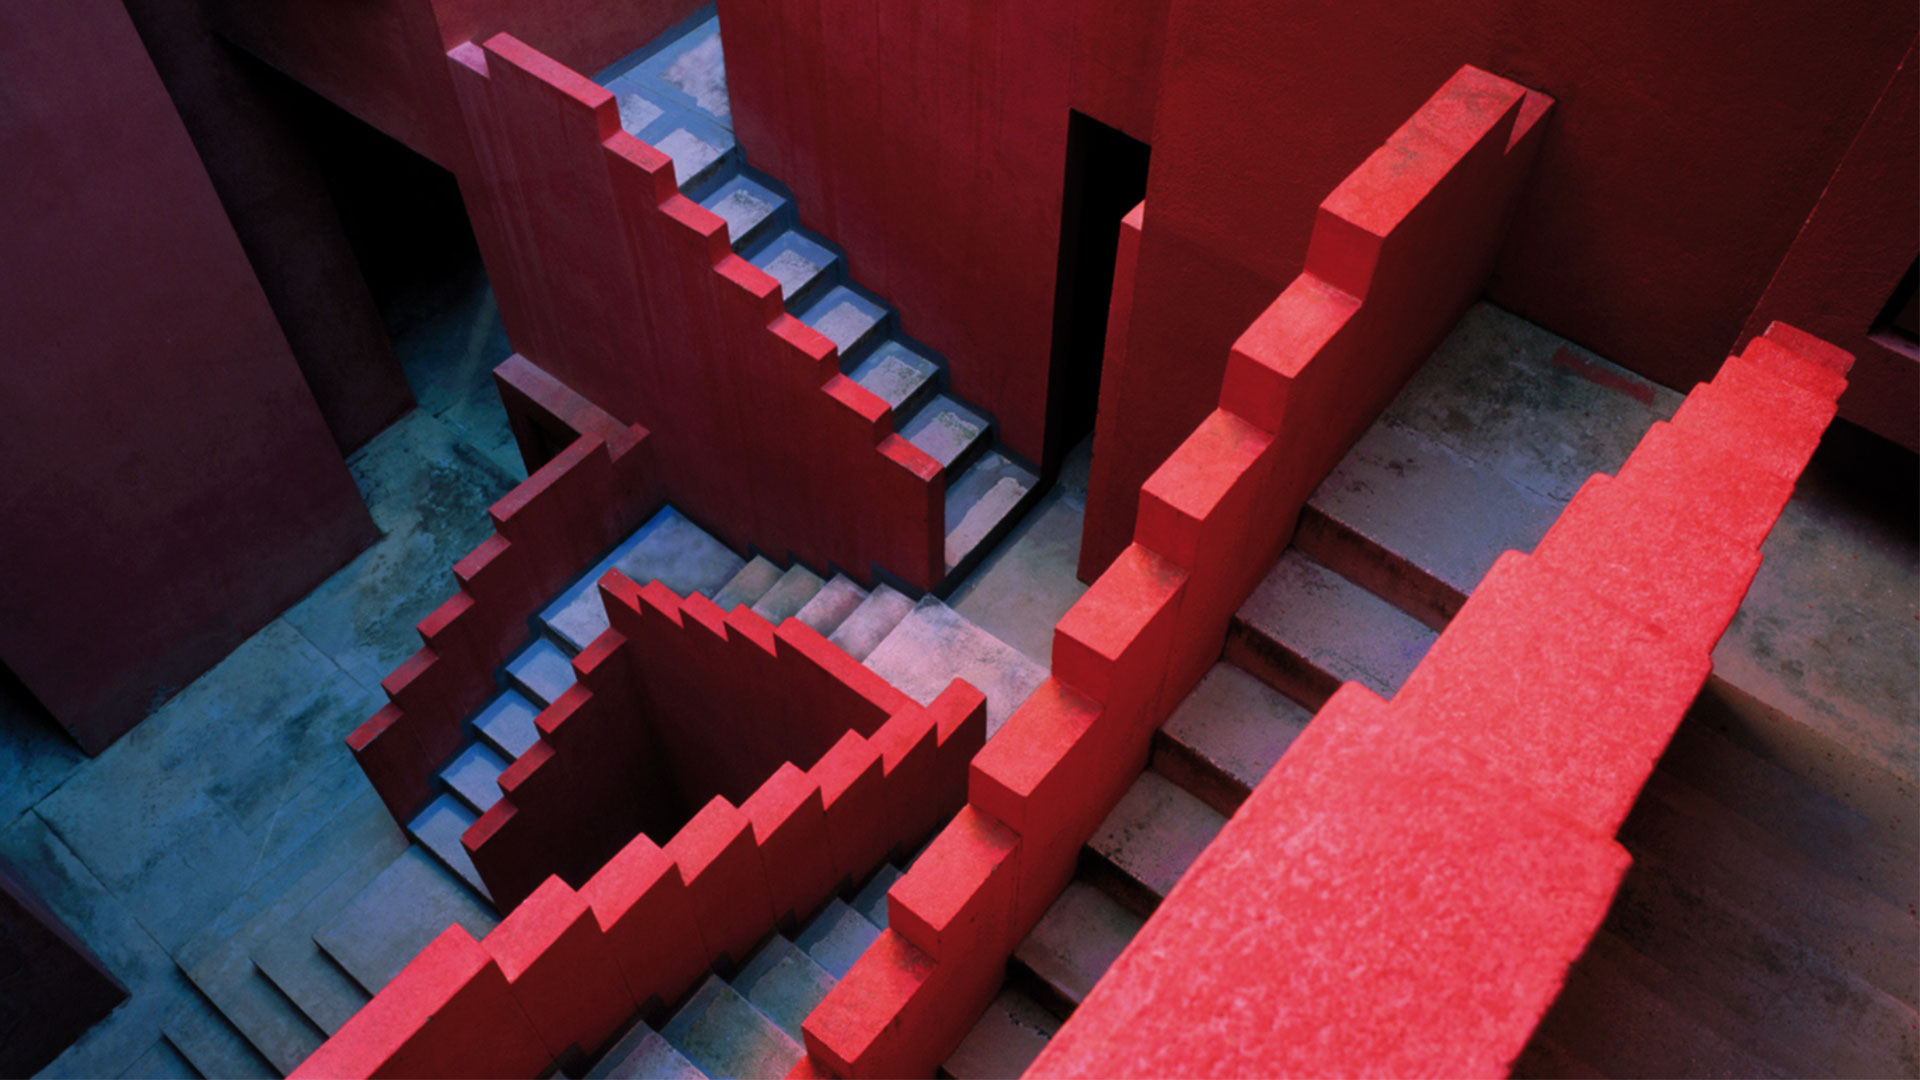 red and blue postmodern stair design seen in a dynamic perspective looking down